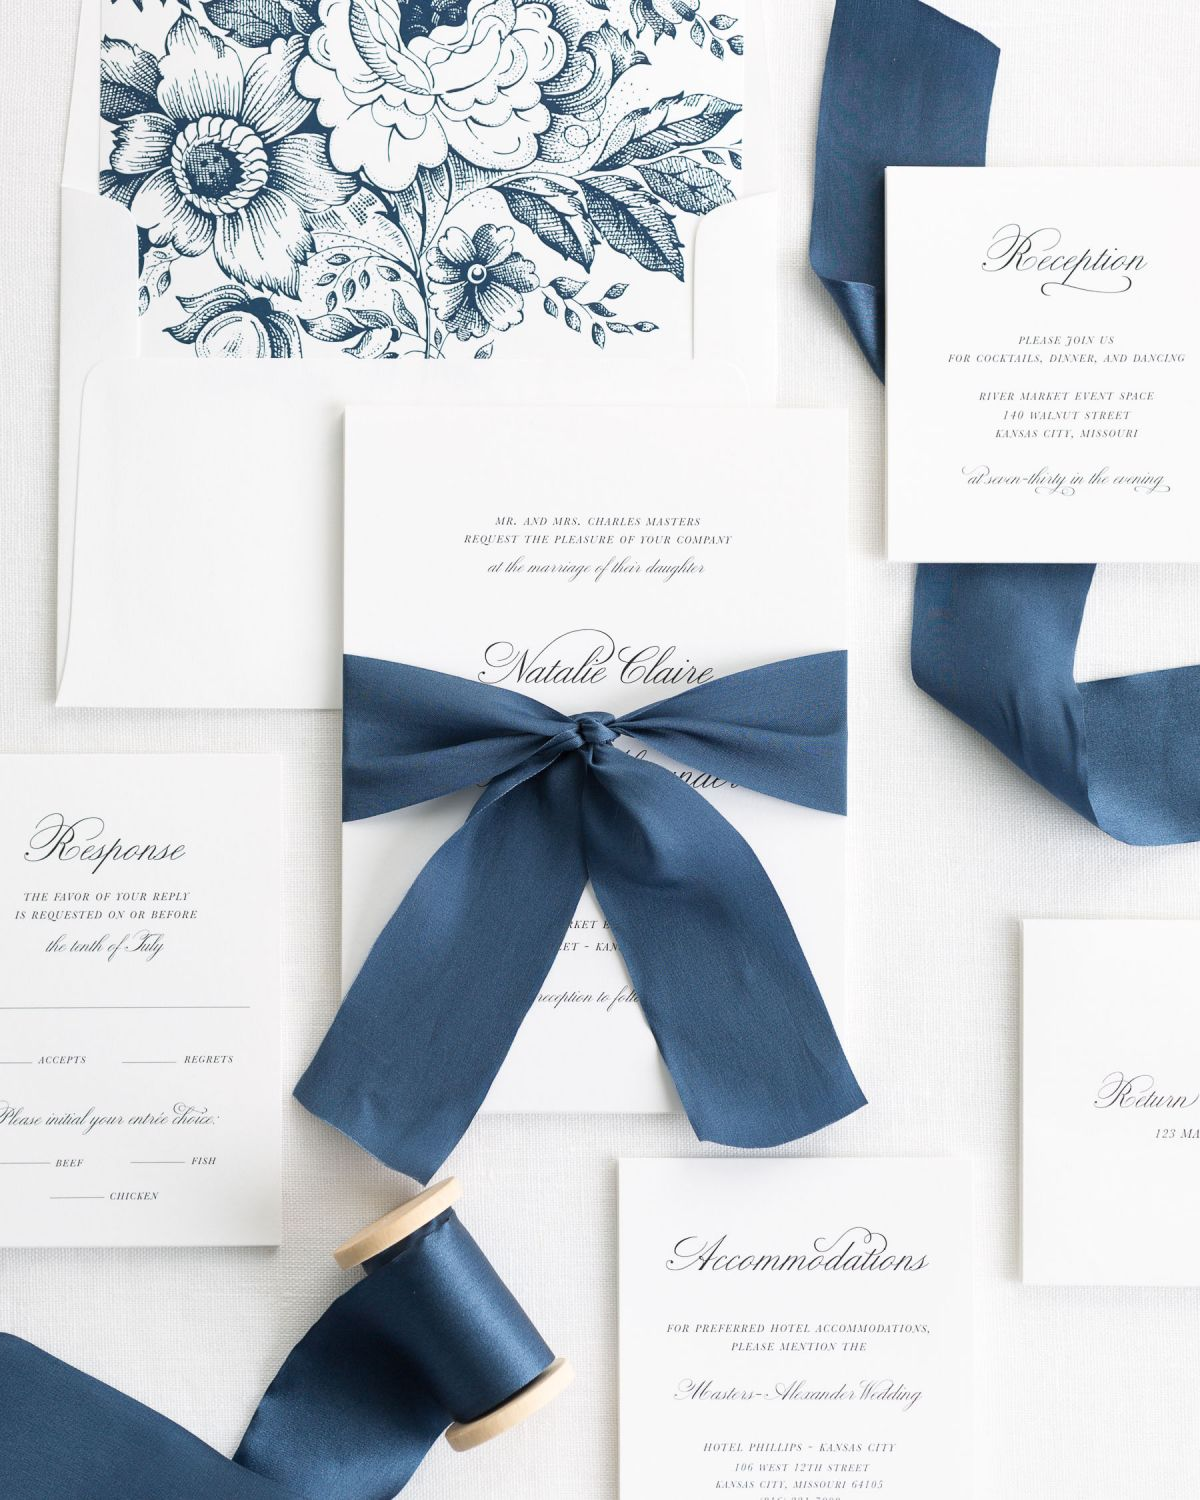 Complete Wedding Invitations with Blue Ribbon and Enclosures